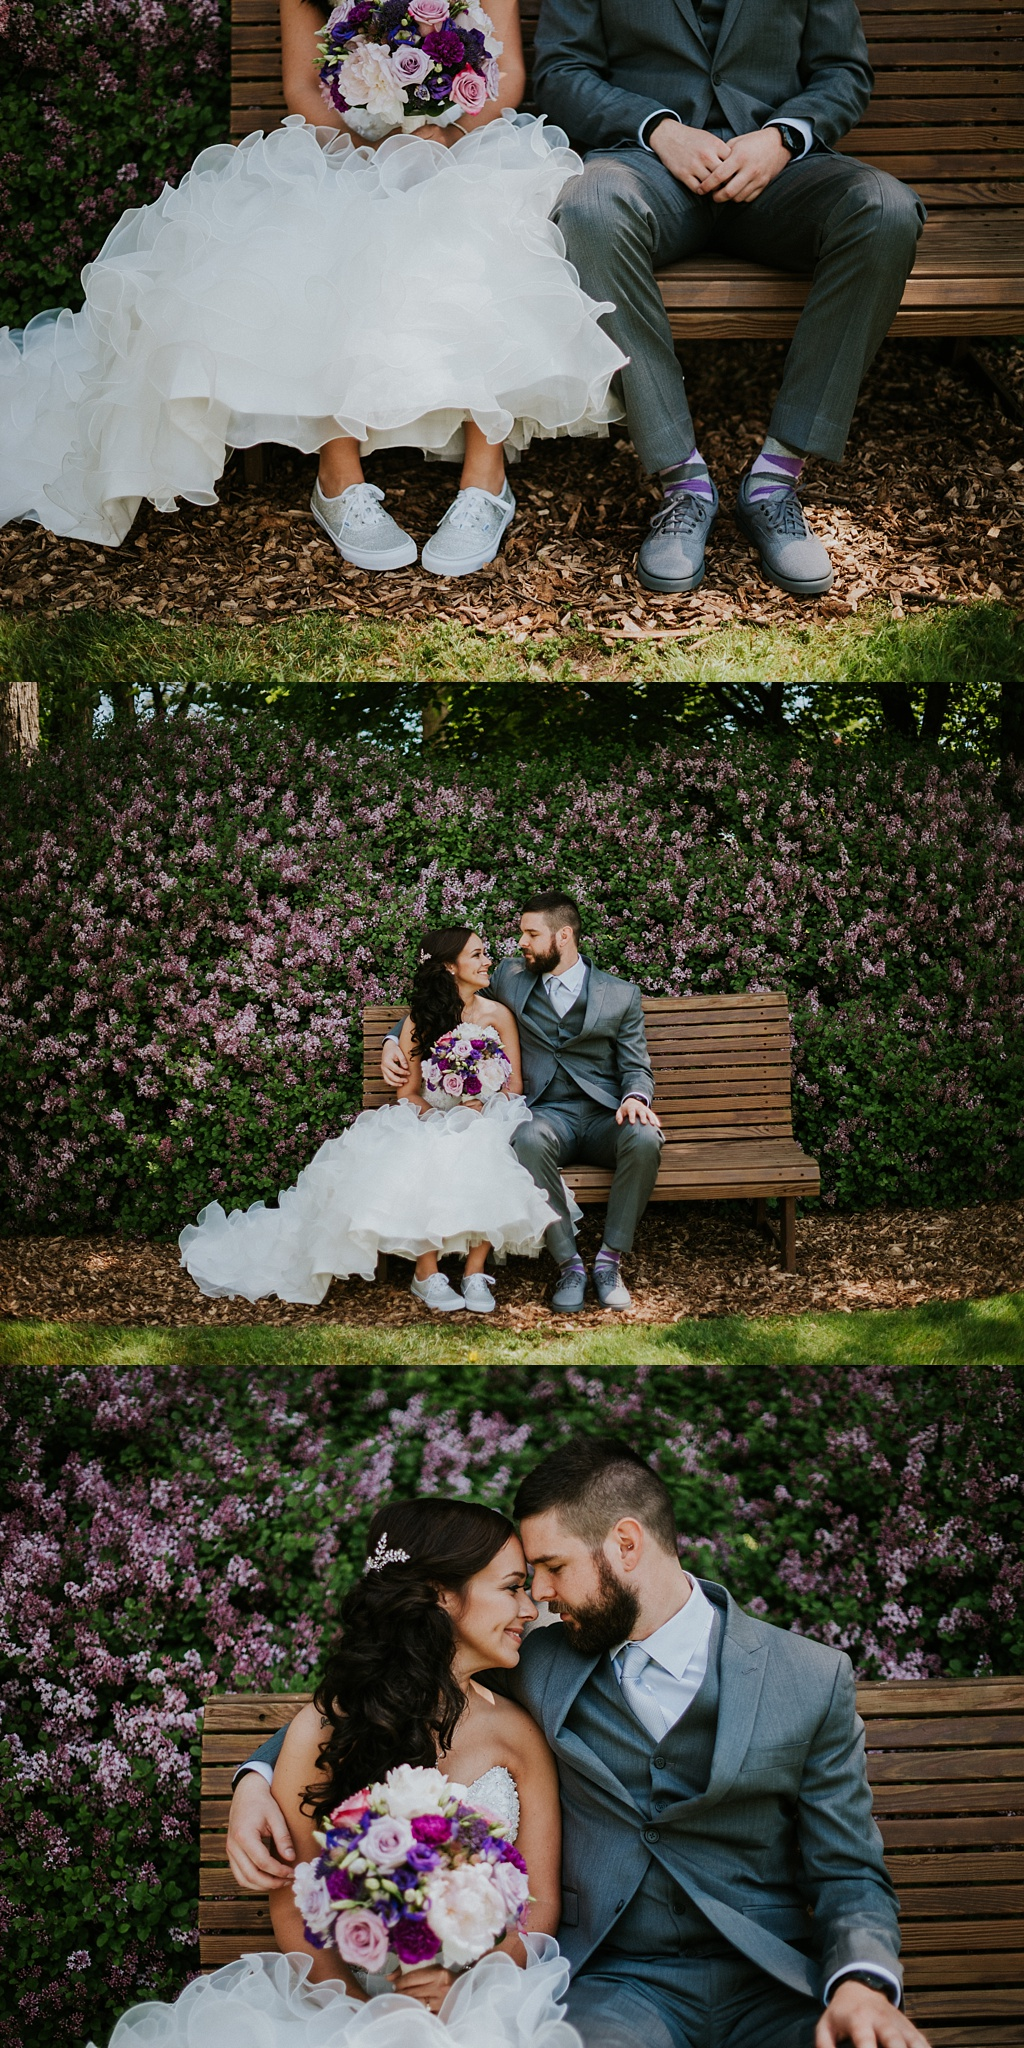 Shelby Chari Photography | South Bend Wedding Photographer | Bride and Groom